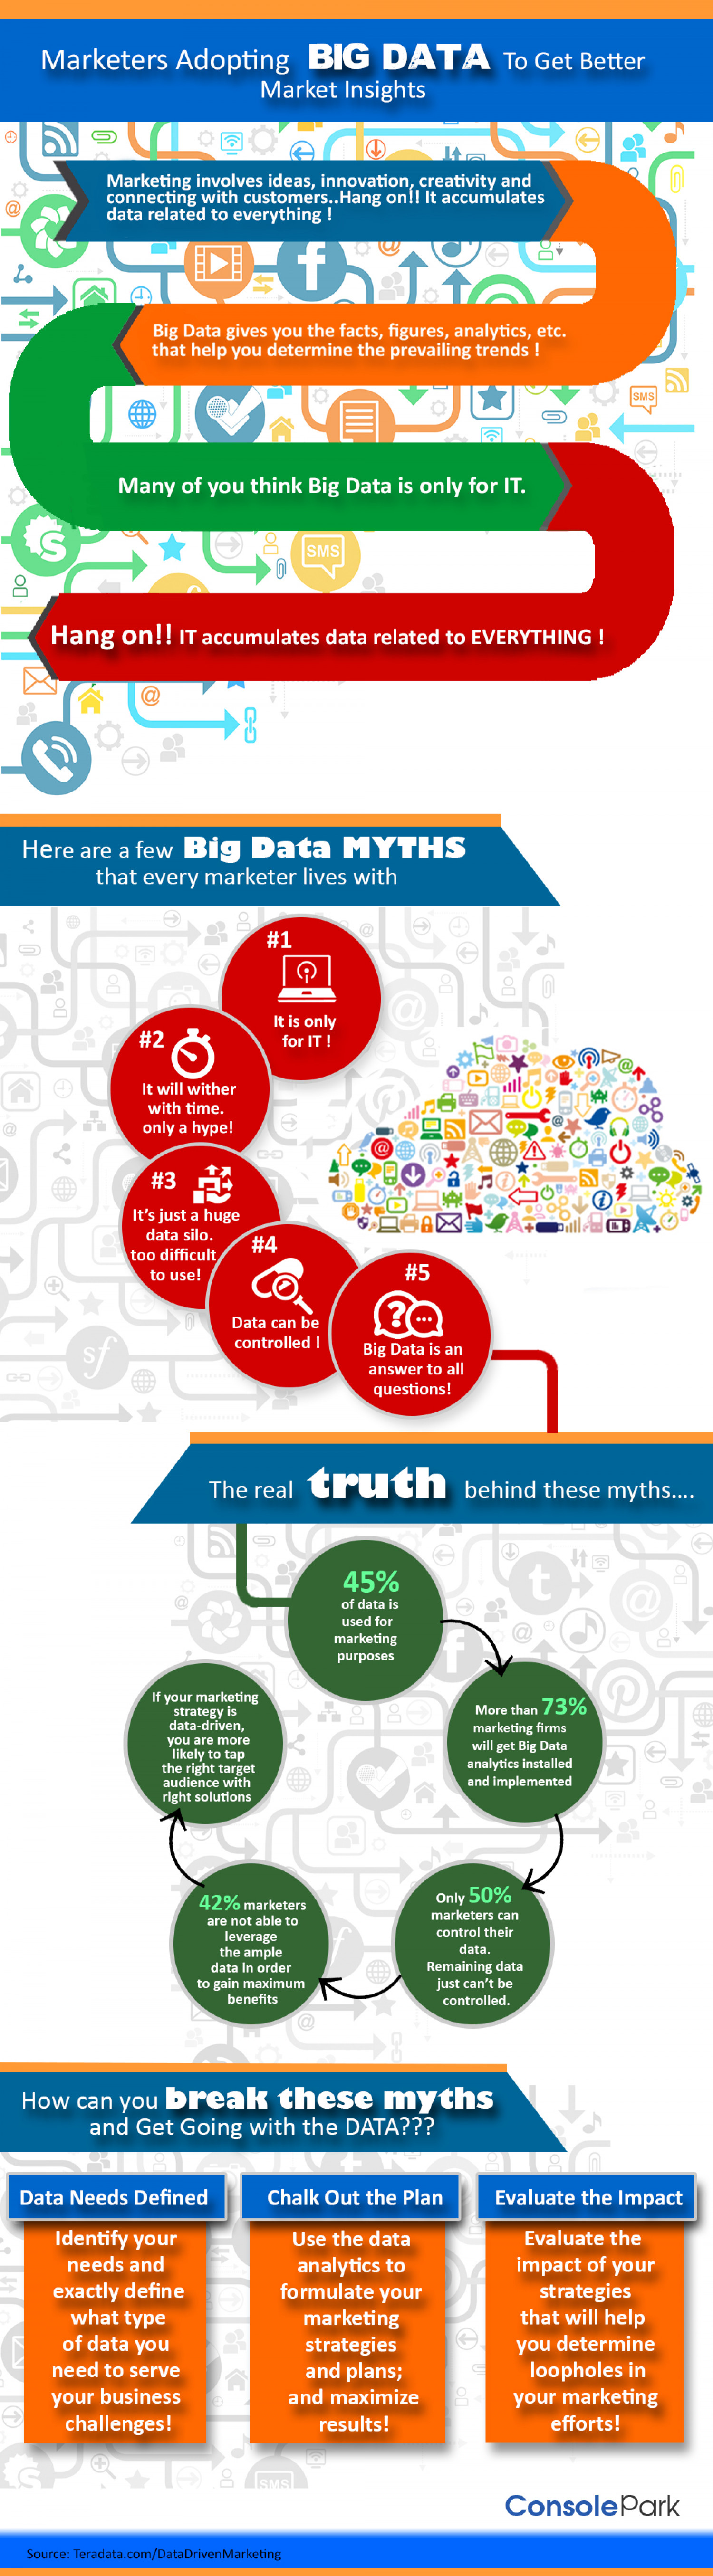 Marketers Adopting Big Data to Get Better Market Insights  Infographic